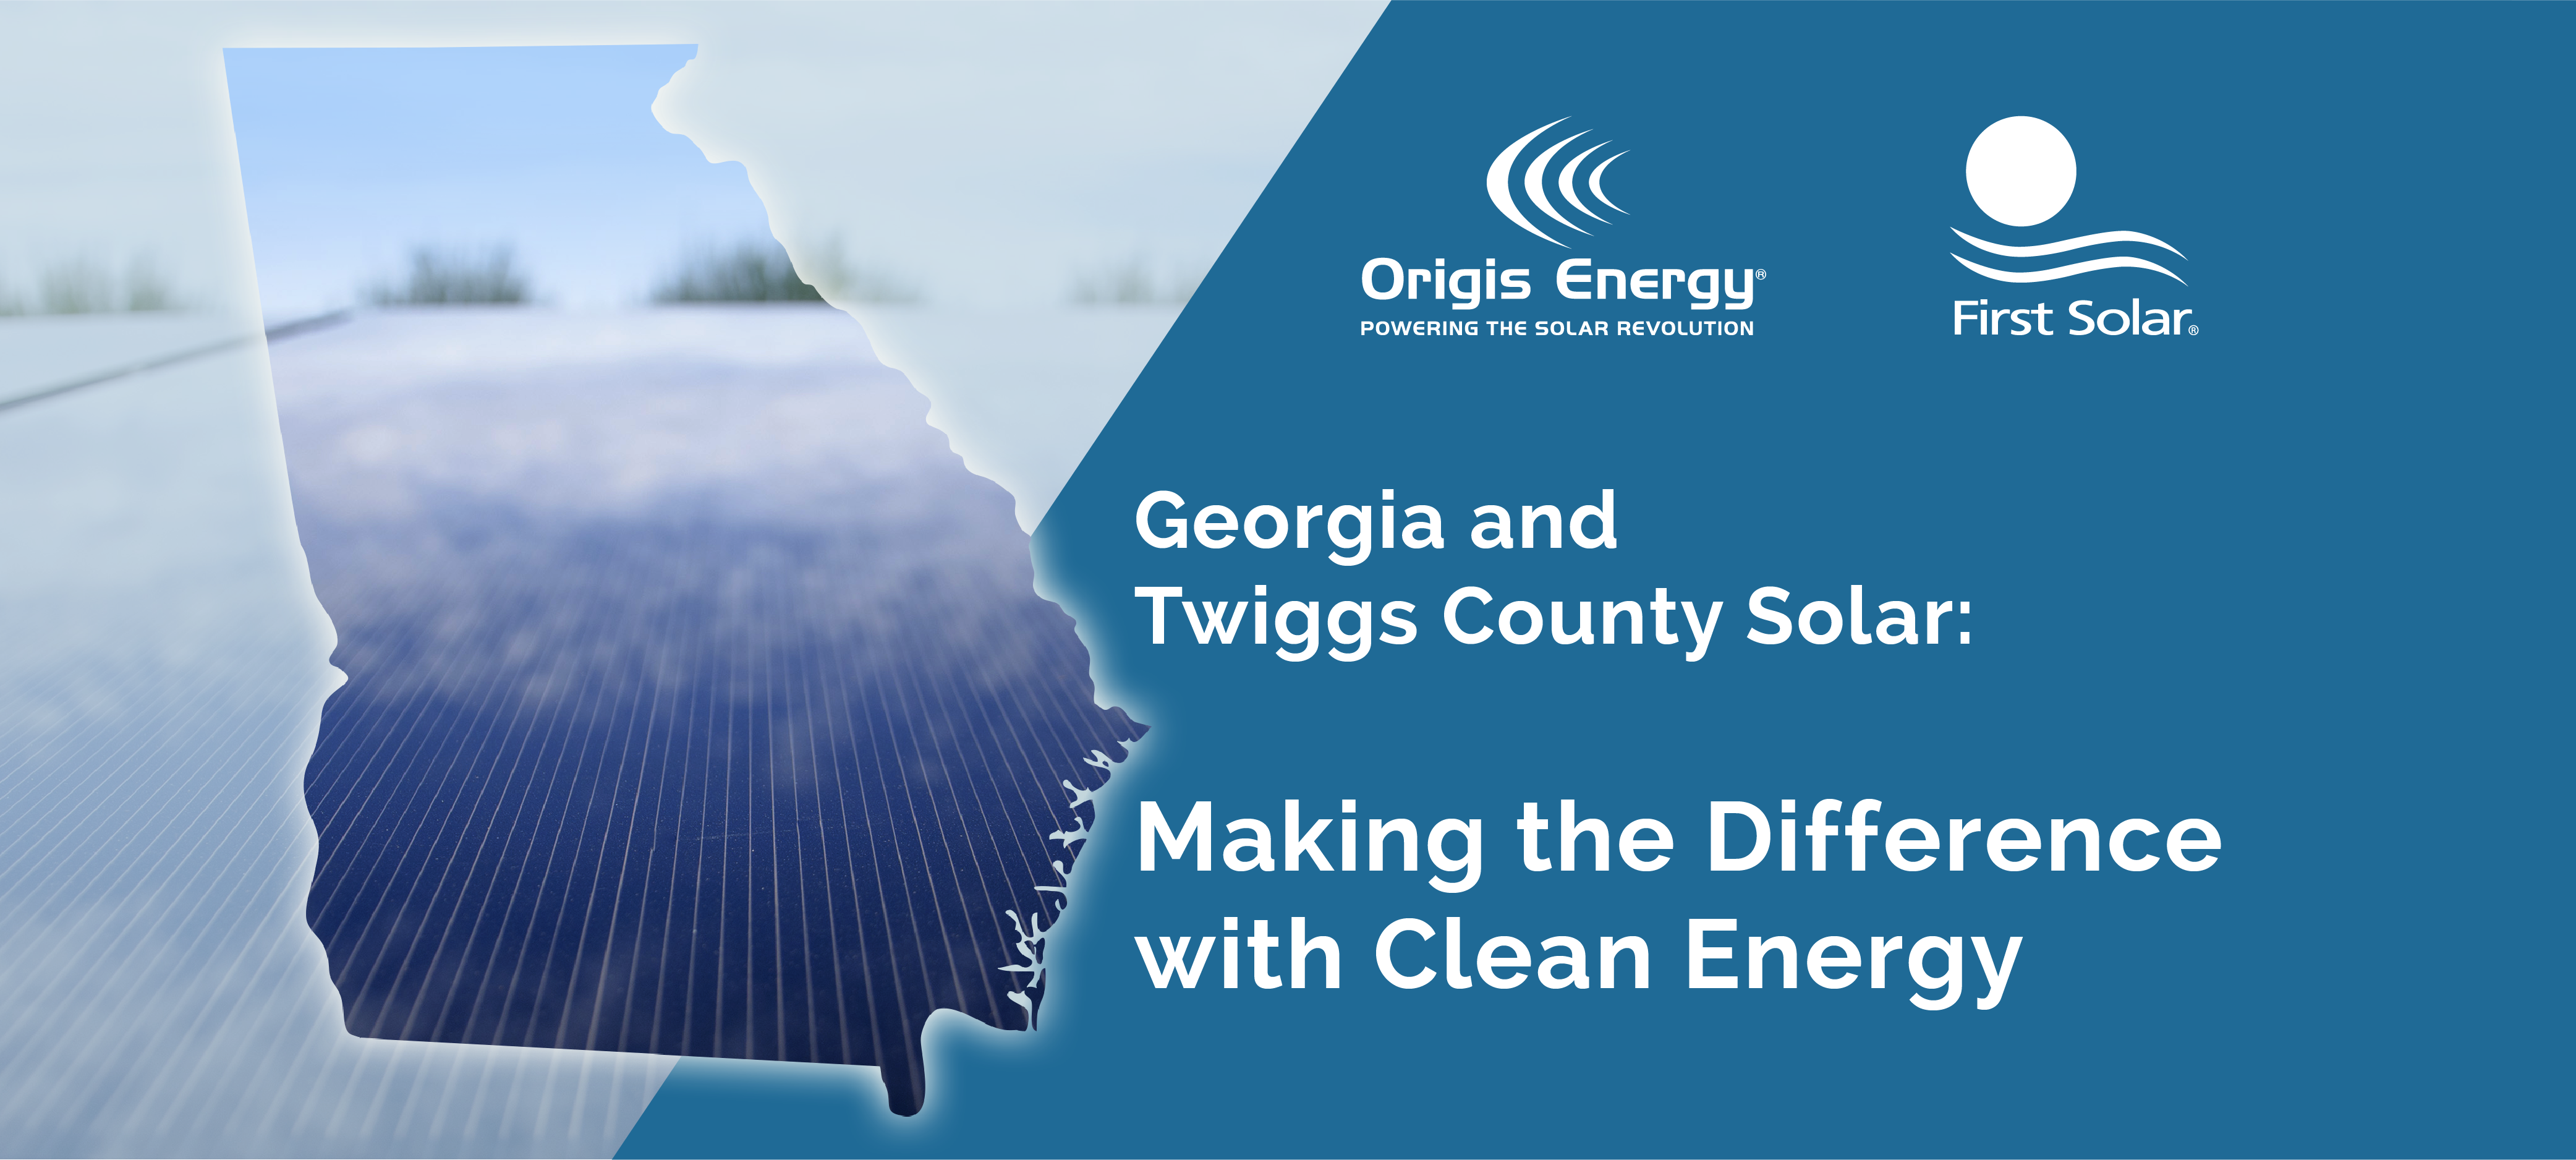 Georgia and Twiggs County Solar: Making the Difference with Clean Energy